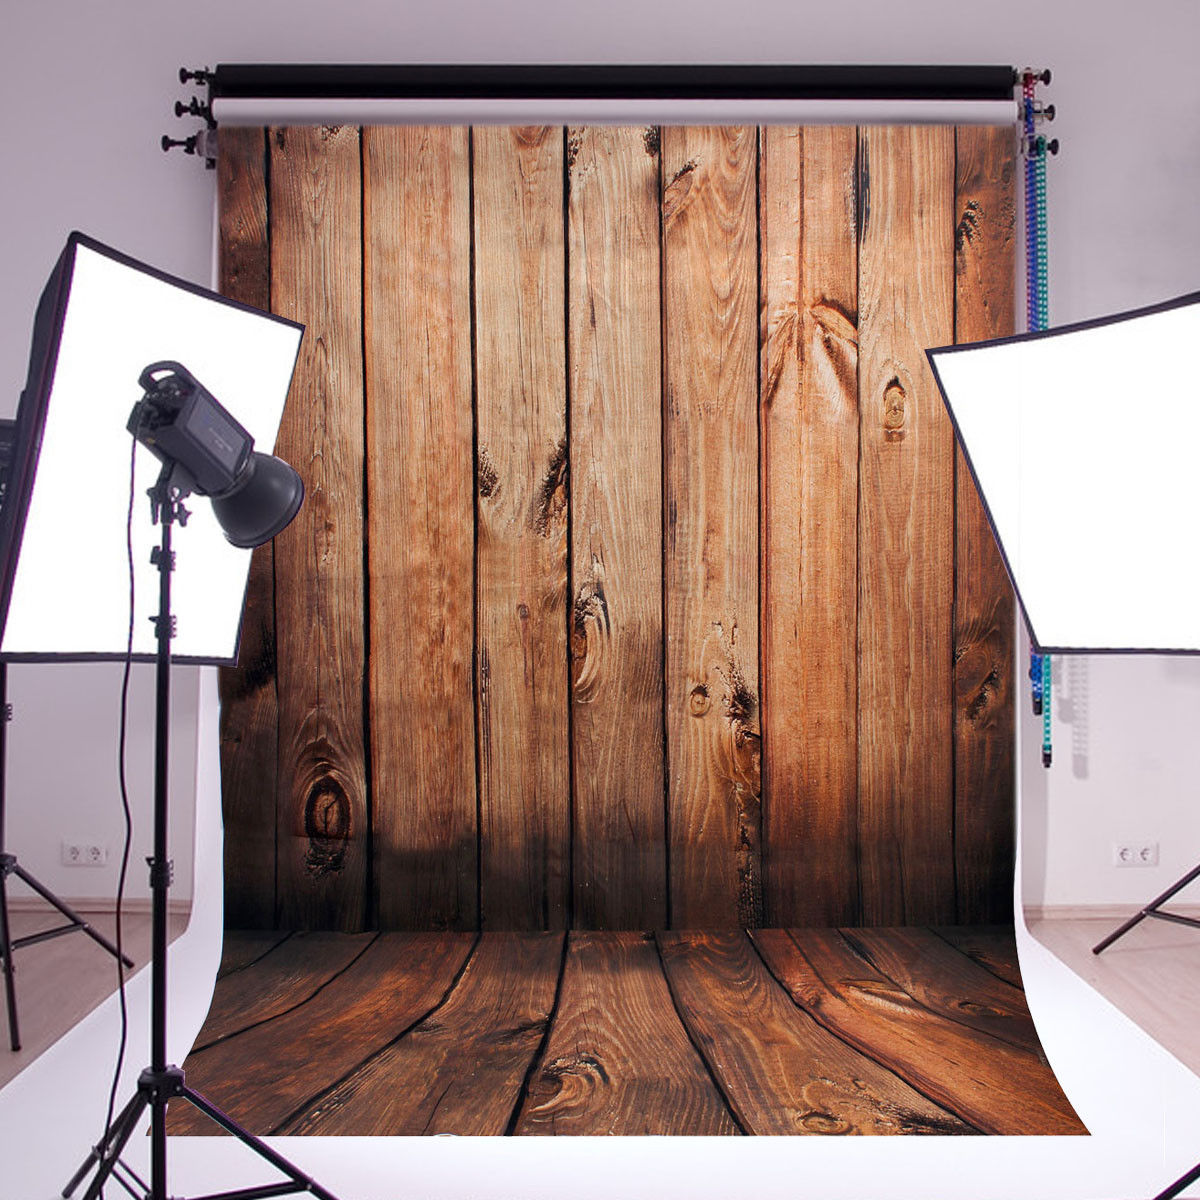 Photography Backdrops vinyl background for photo studio vintage wood baby background 2.1*1.5m Hot Sale shanny vinyl custom christmas theme photography backdrops prop photo studio background yhshd 8013